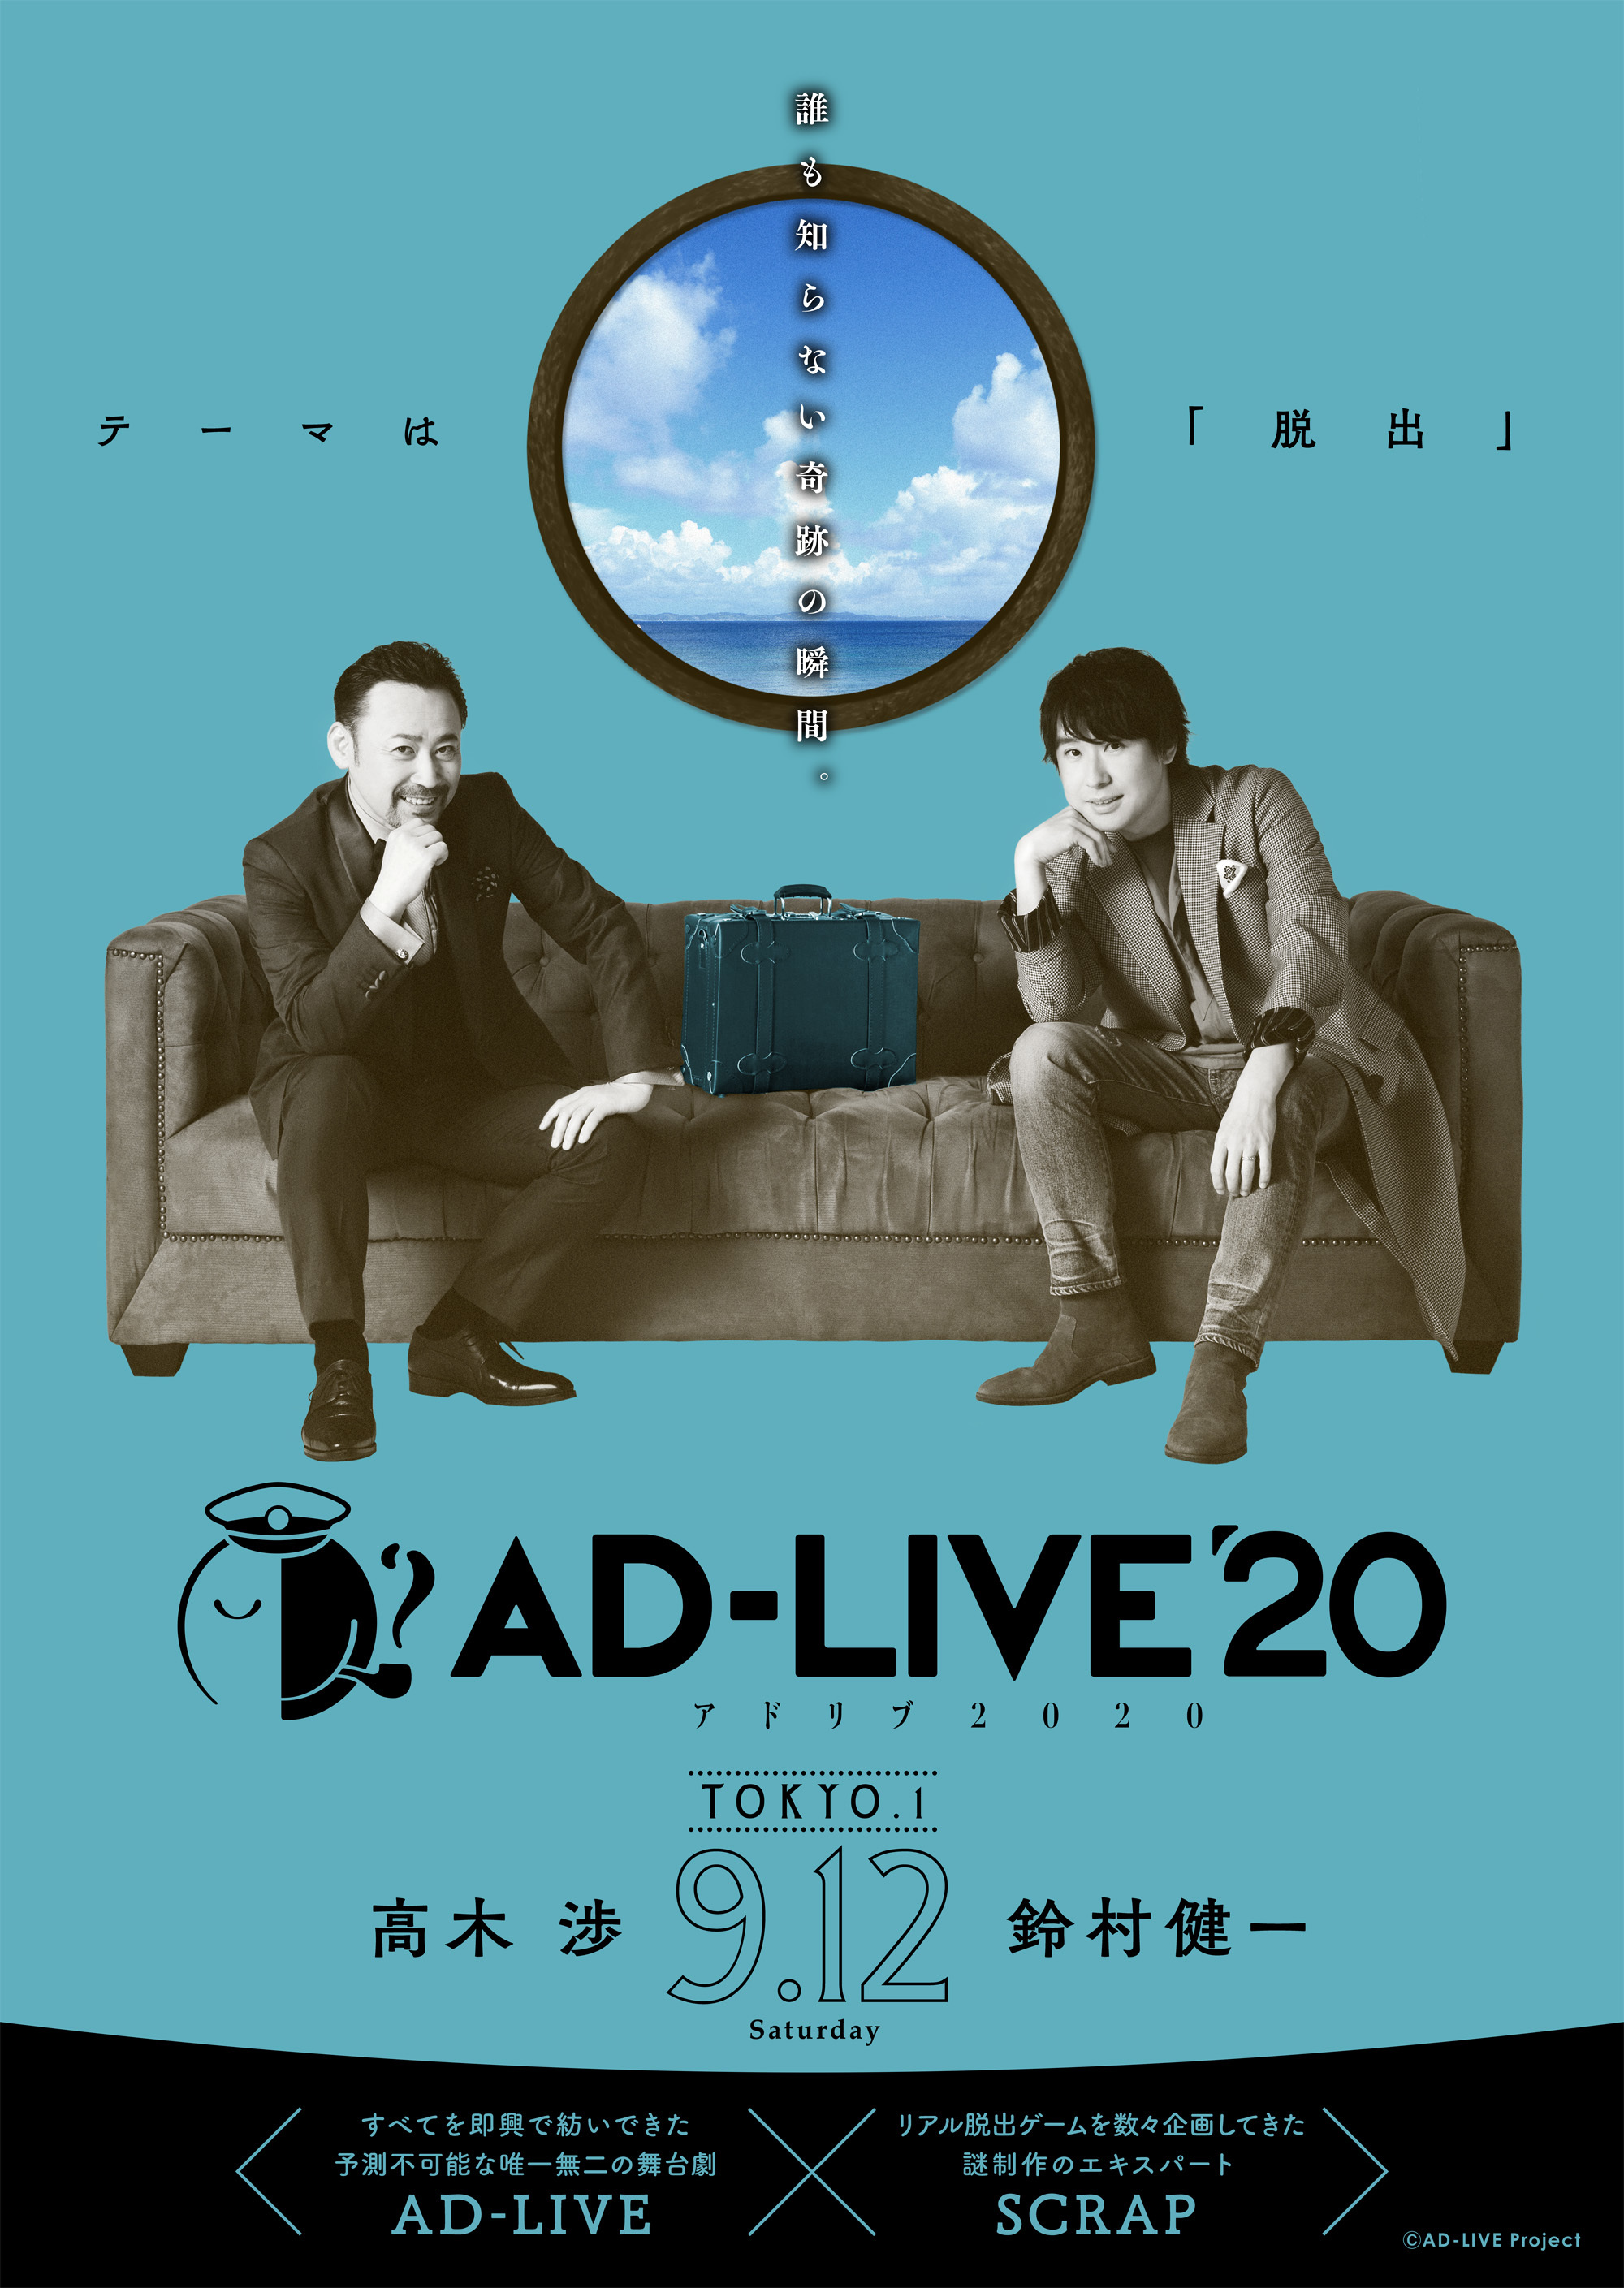 (C) AD-LIVE Project